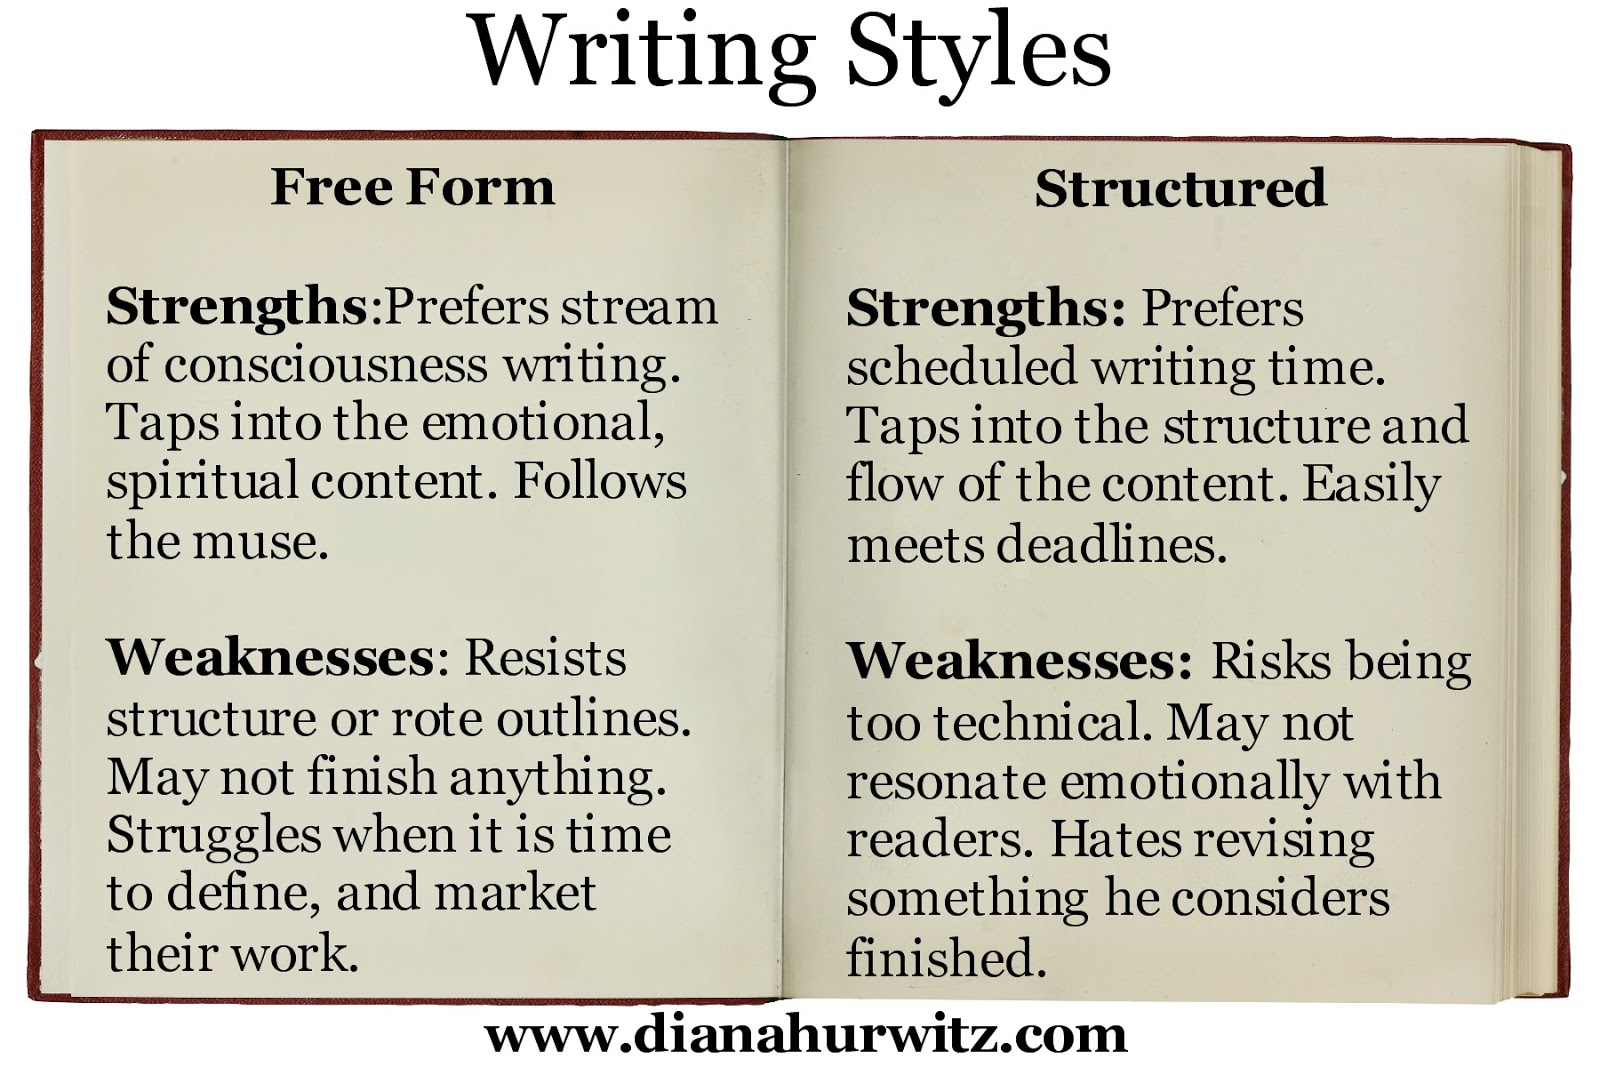 1: Get a good writing style guide